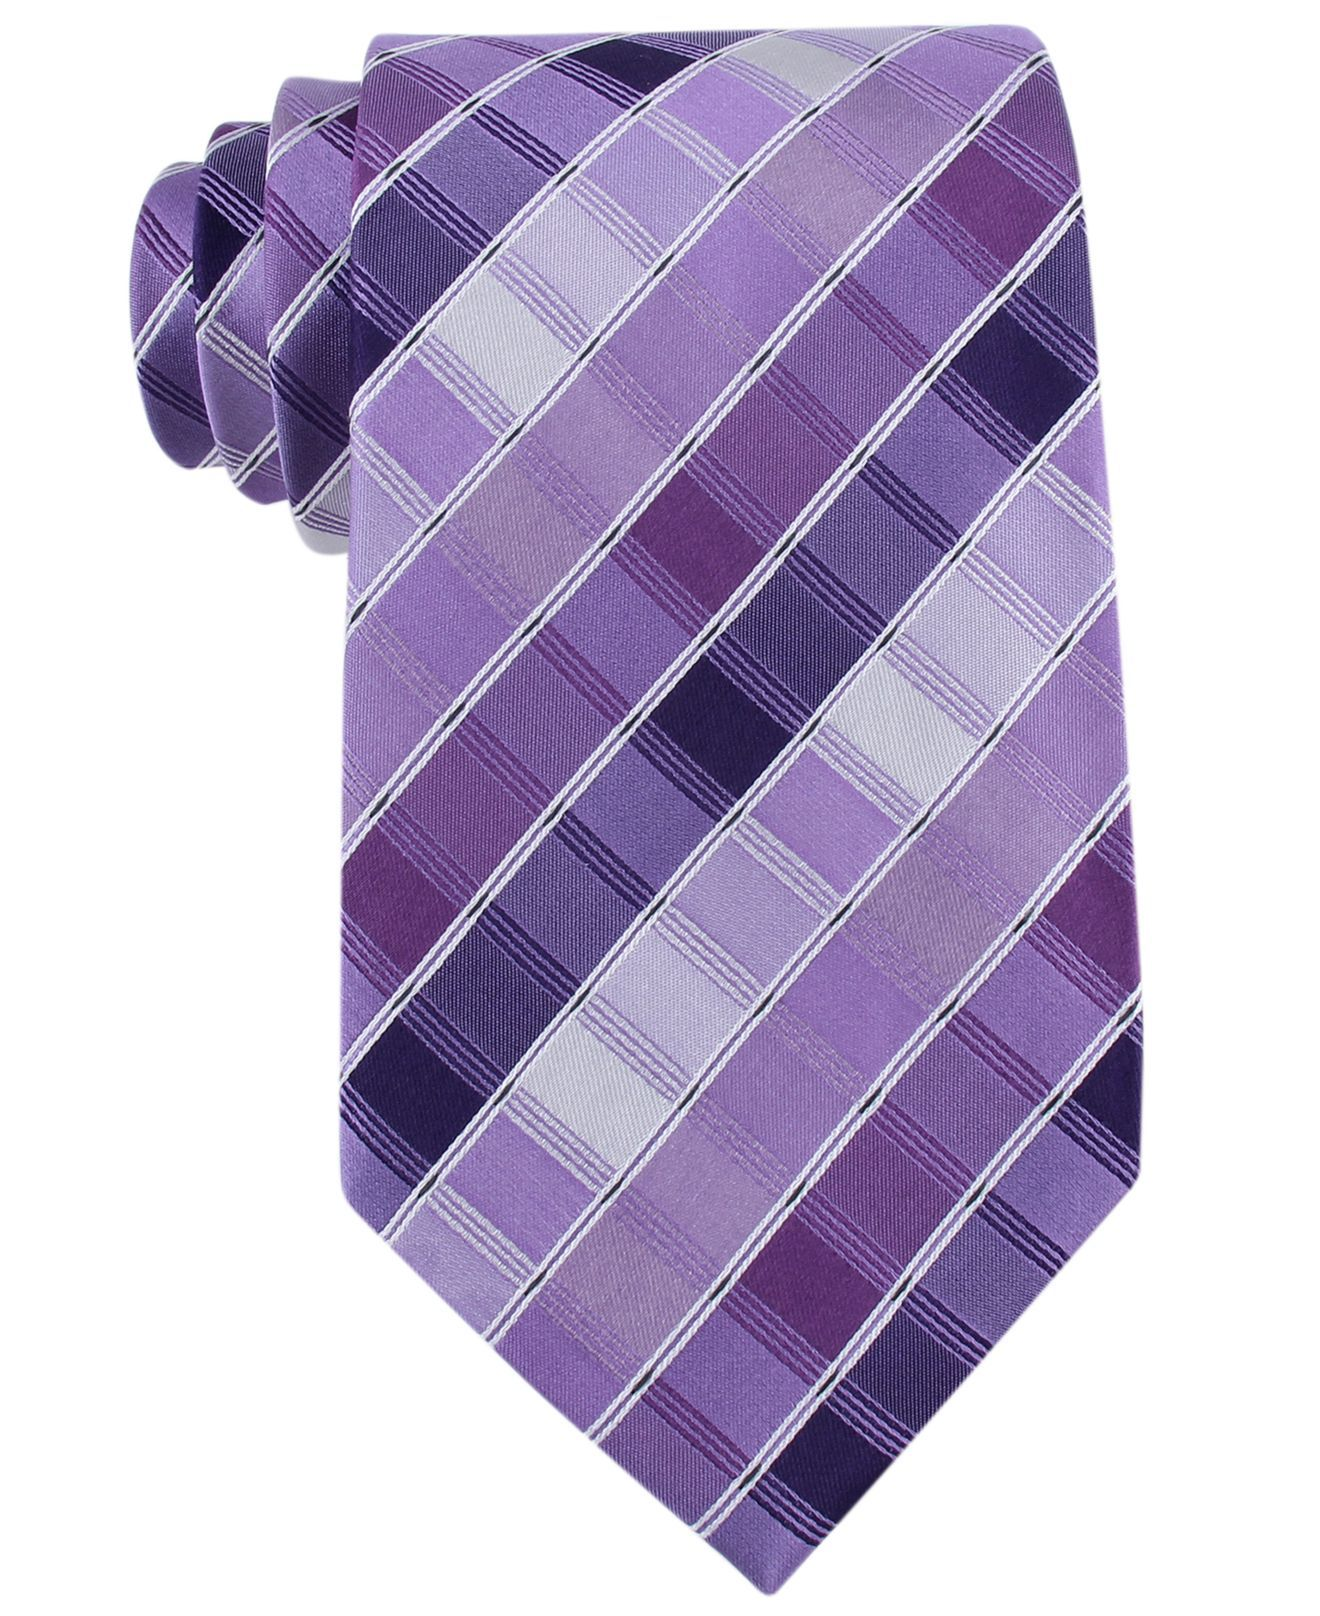 65818f8b514e Kenneth Cole Reaction Tie, Fresno Geo - Mens Ties - Macy's | Suit in ...